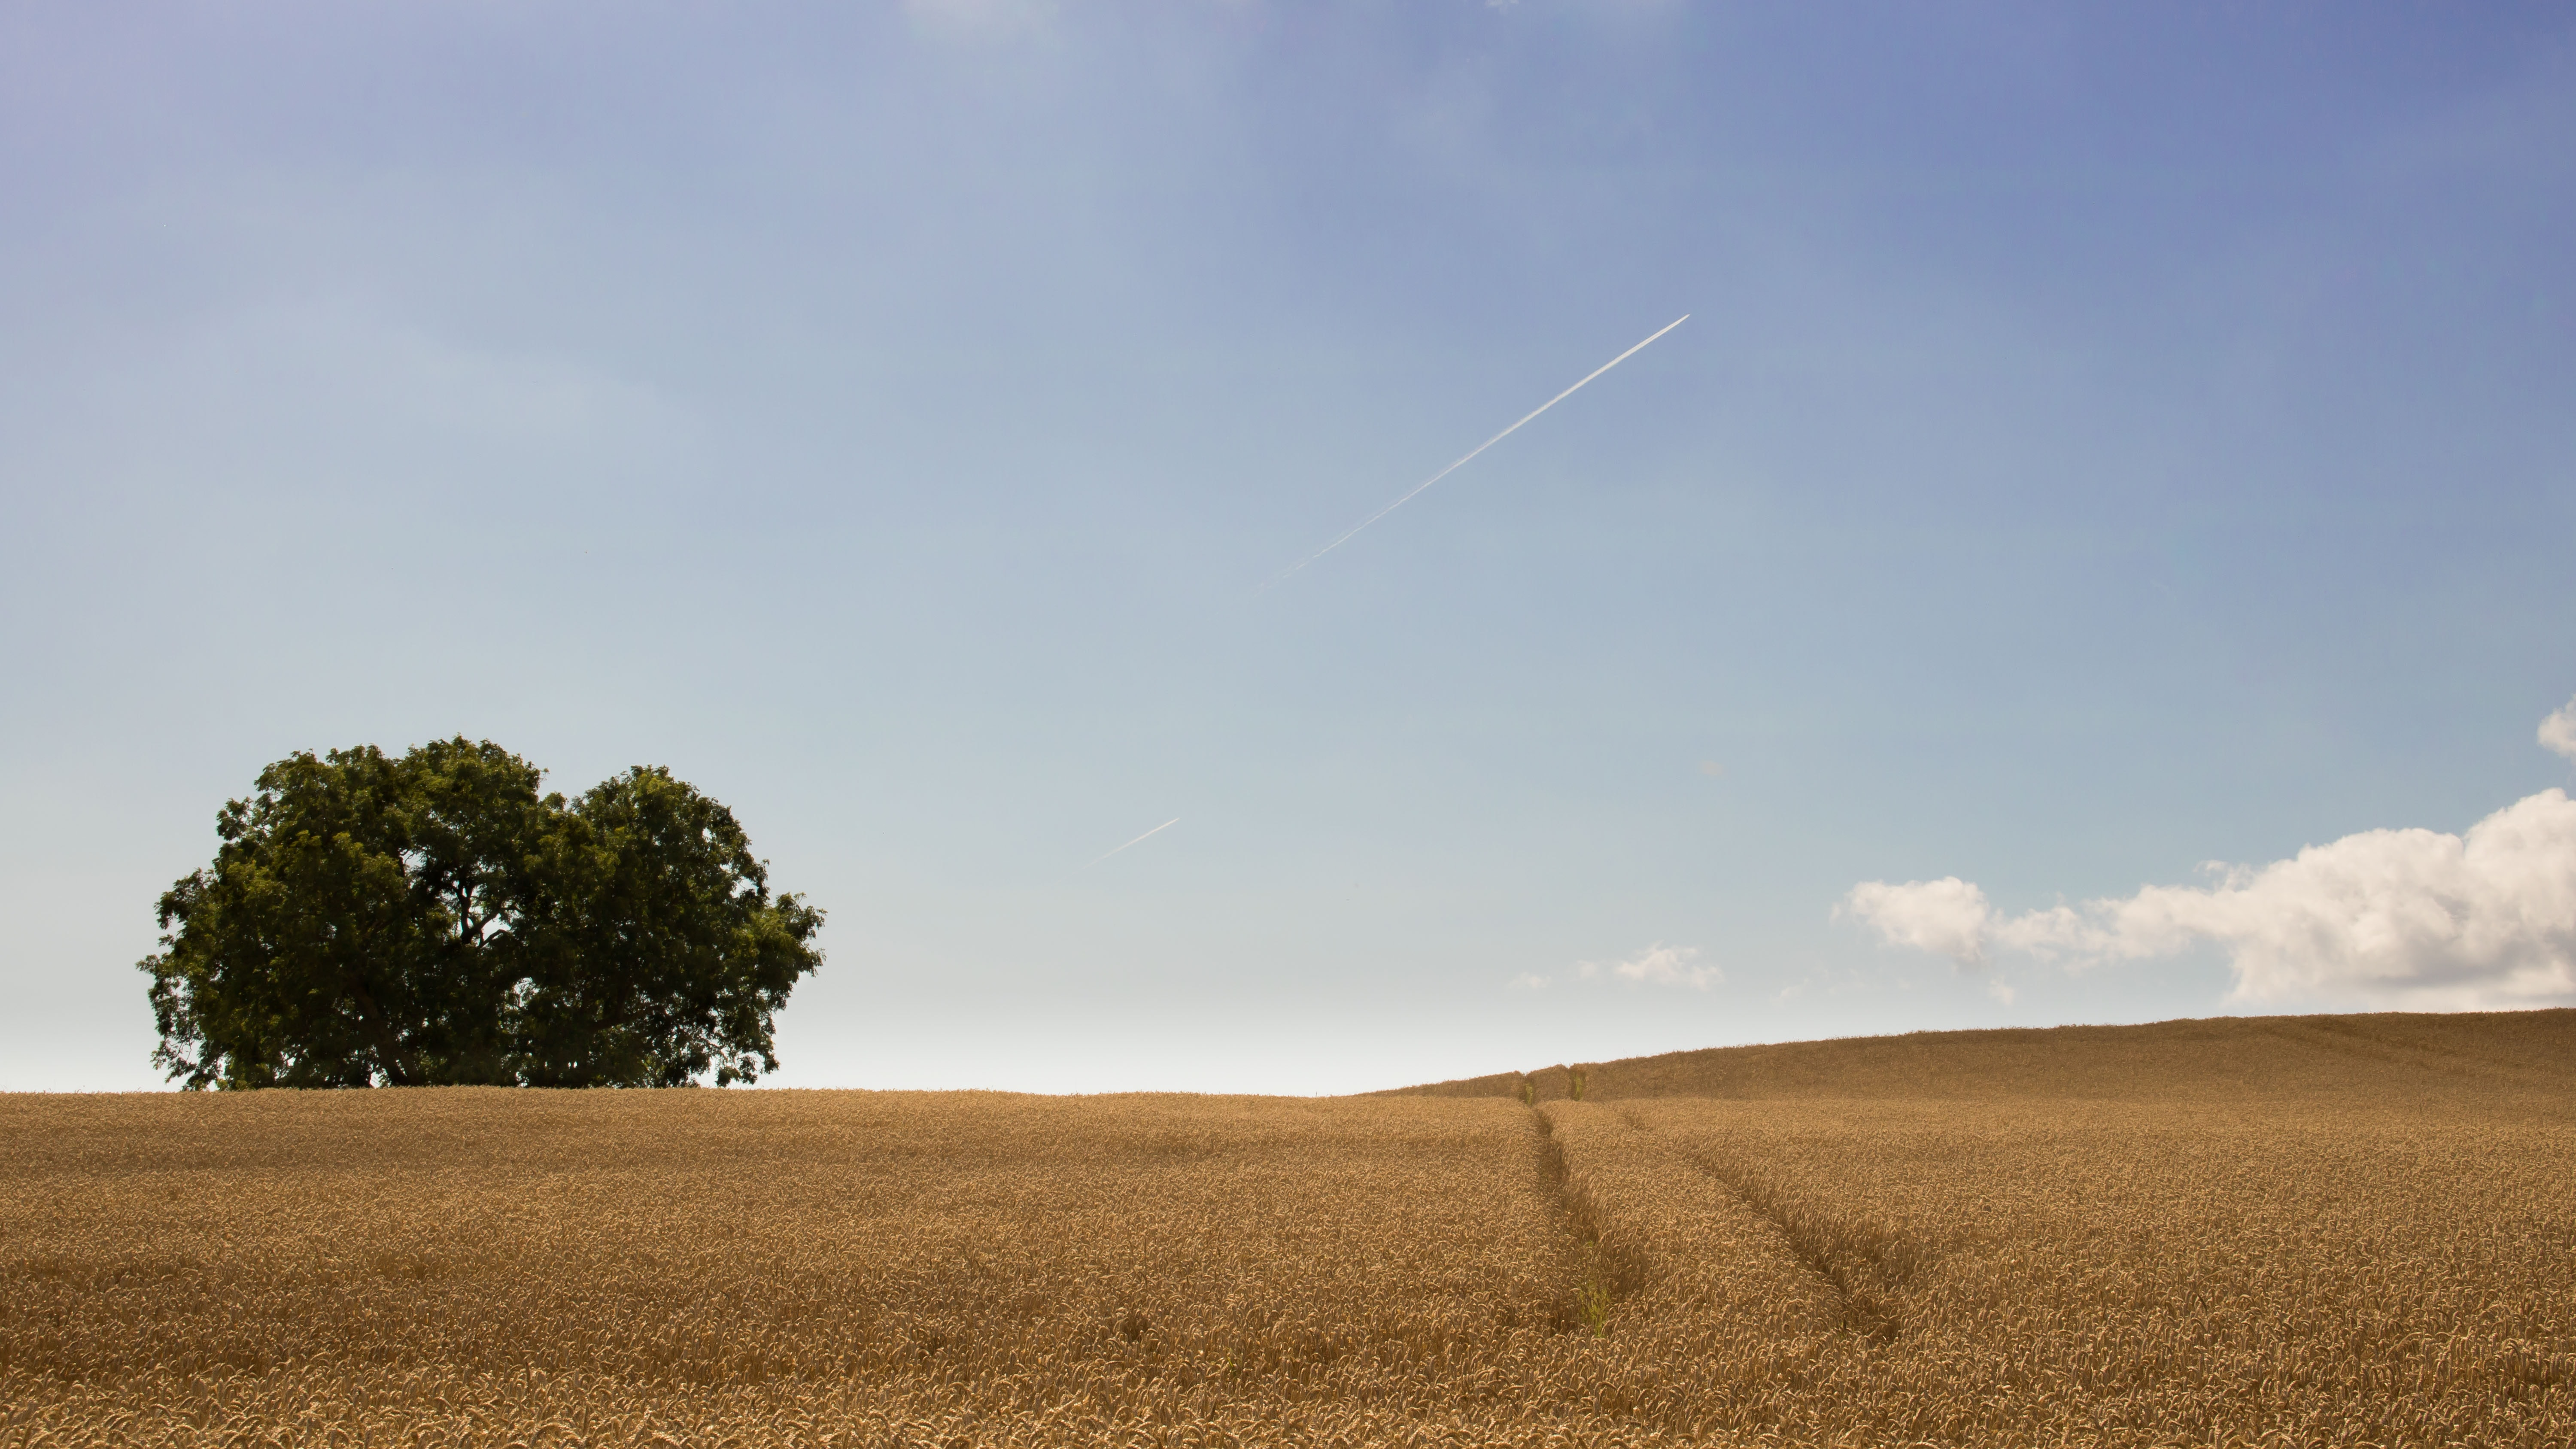 dried grass field with one tree